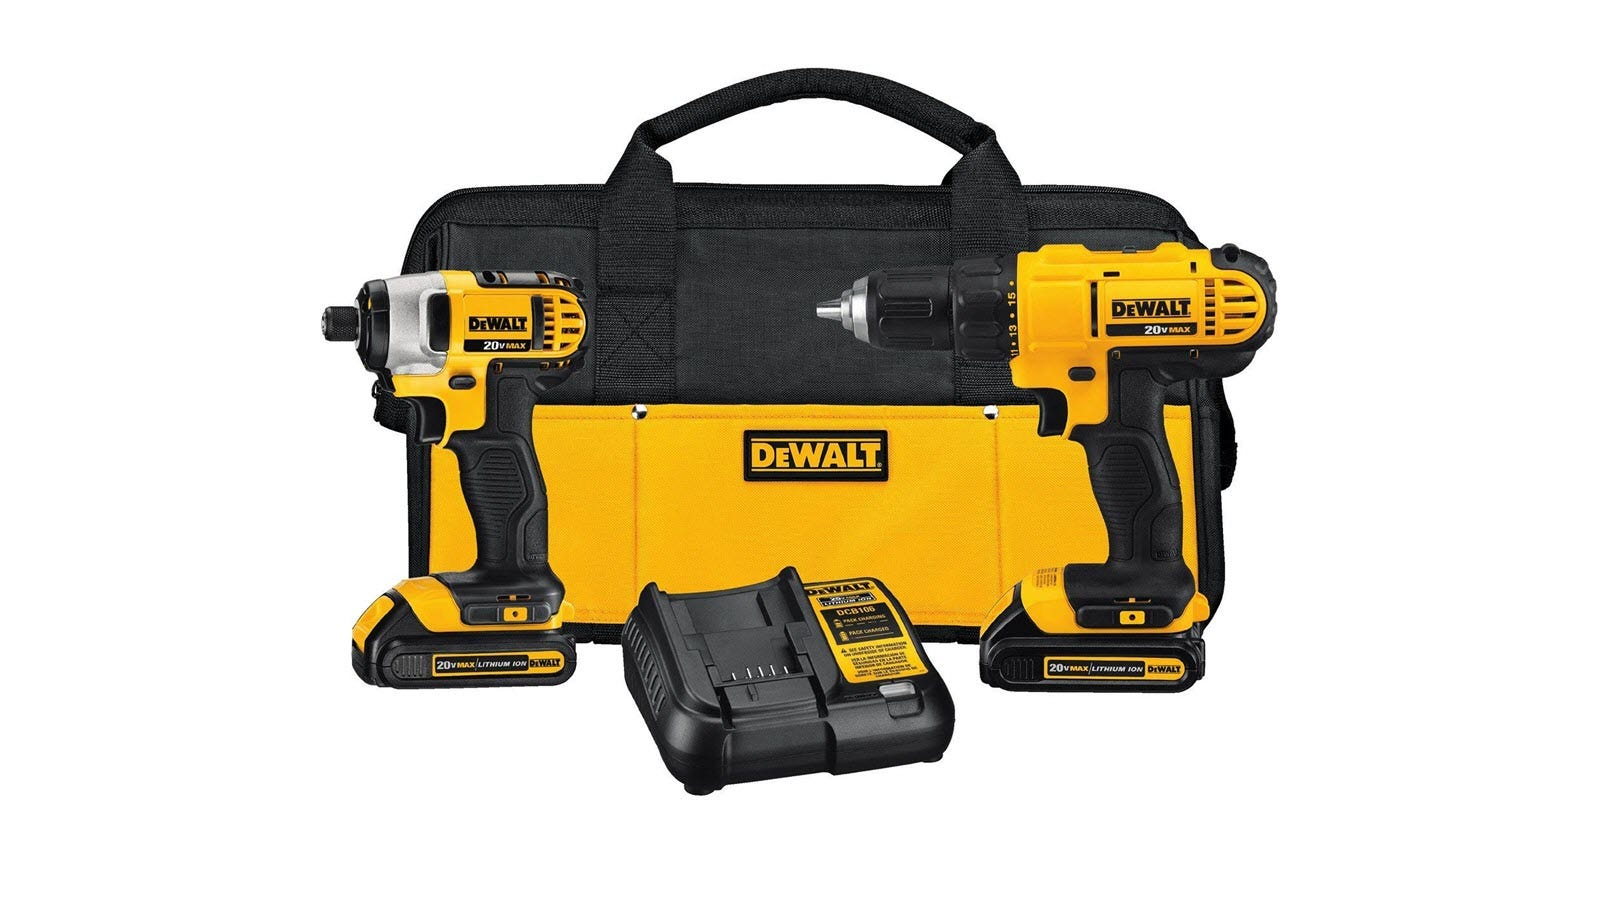 A DEWALT Impact Driver and Power drill combo kit, showing batteries, charger, and case.